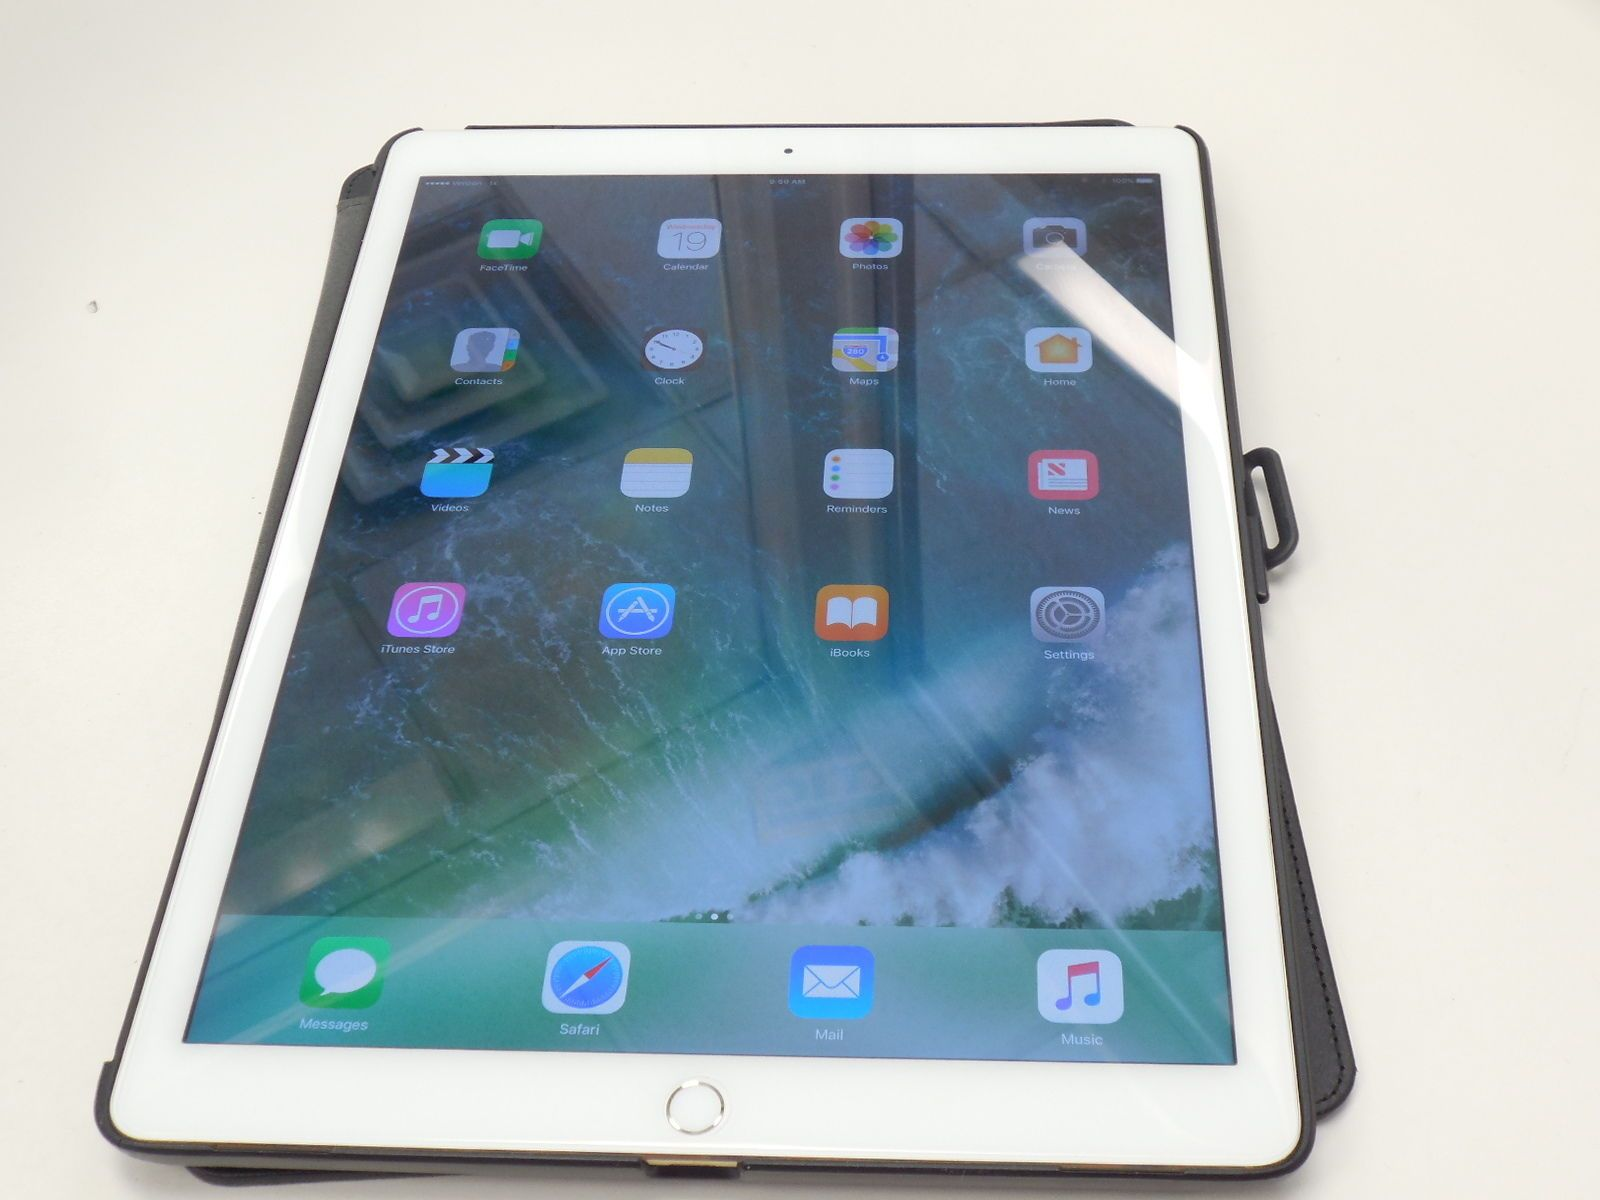 Perks of the iPad Pro - Storage Needs for iPad Pro Users